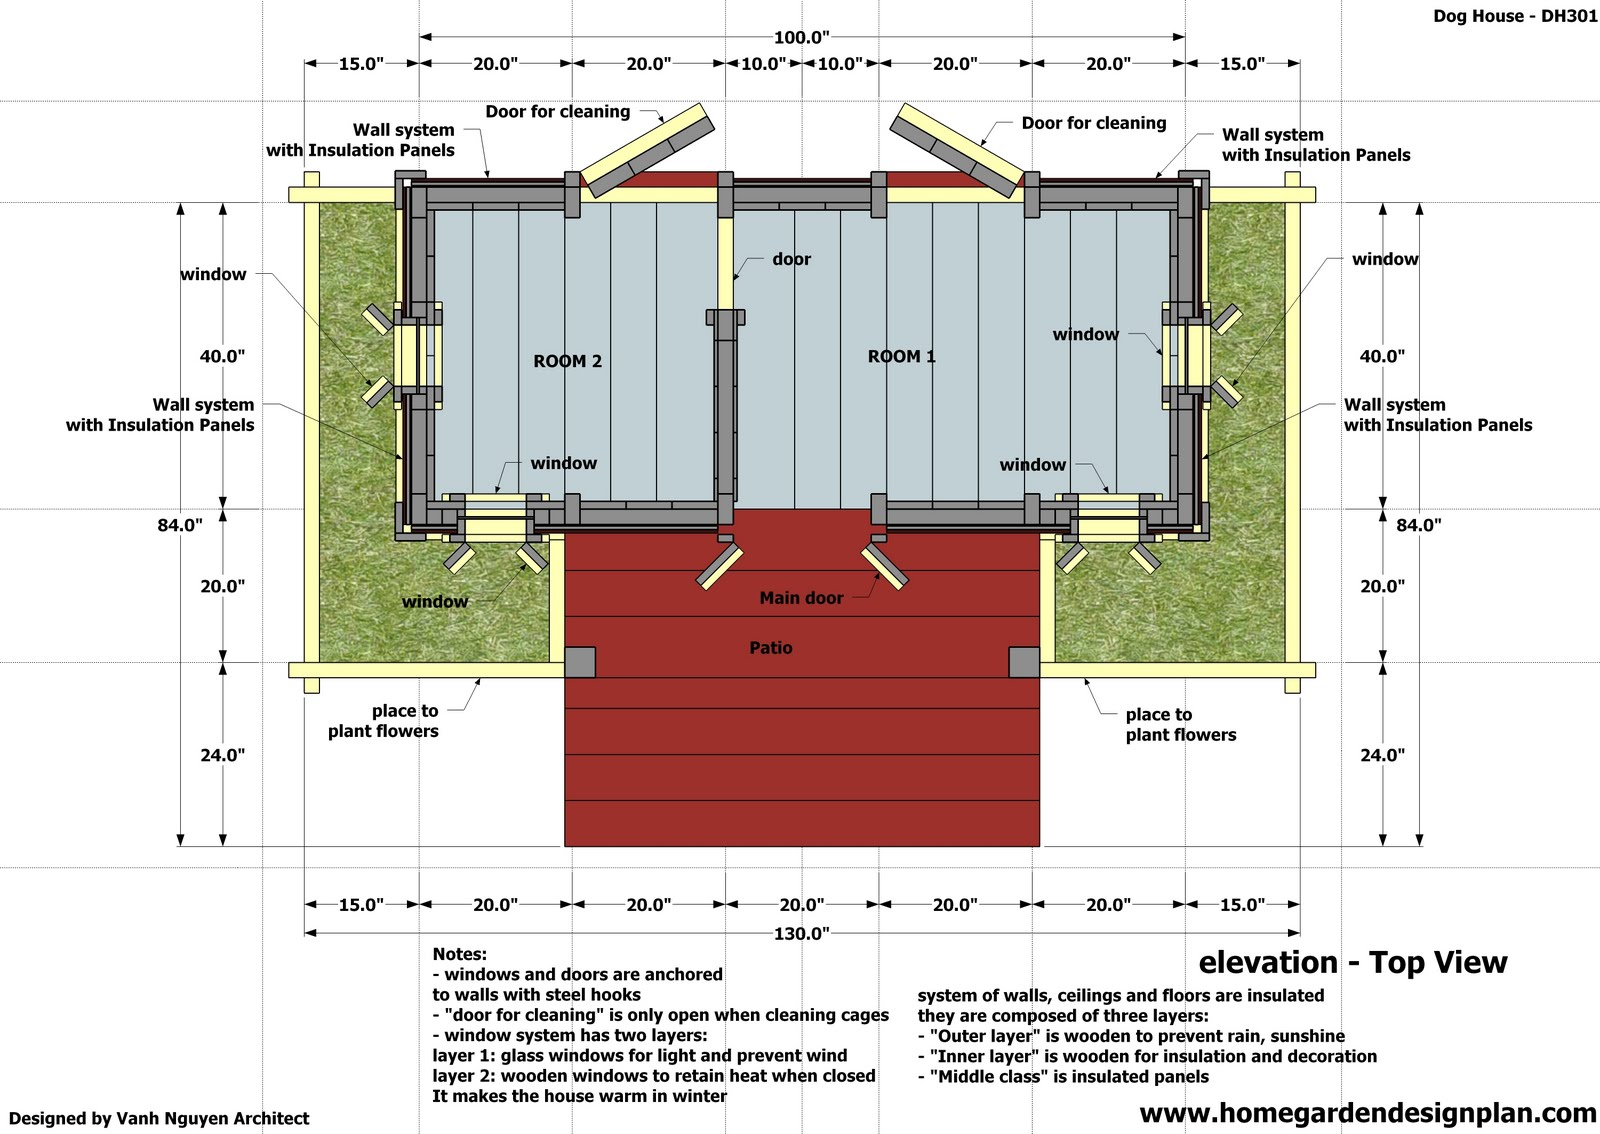 Home Garden Plans Dh301 Dog House Plans How To Build